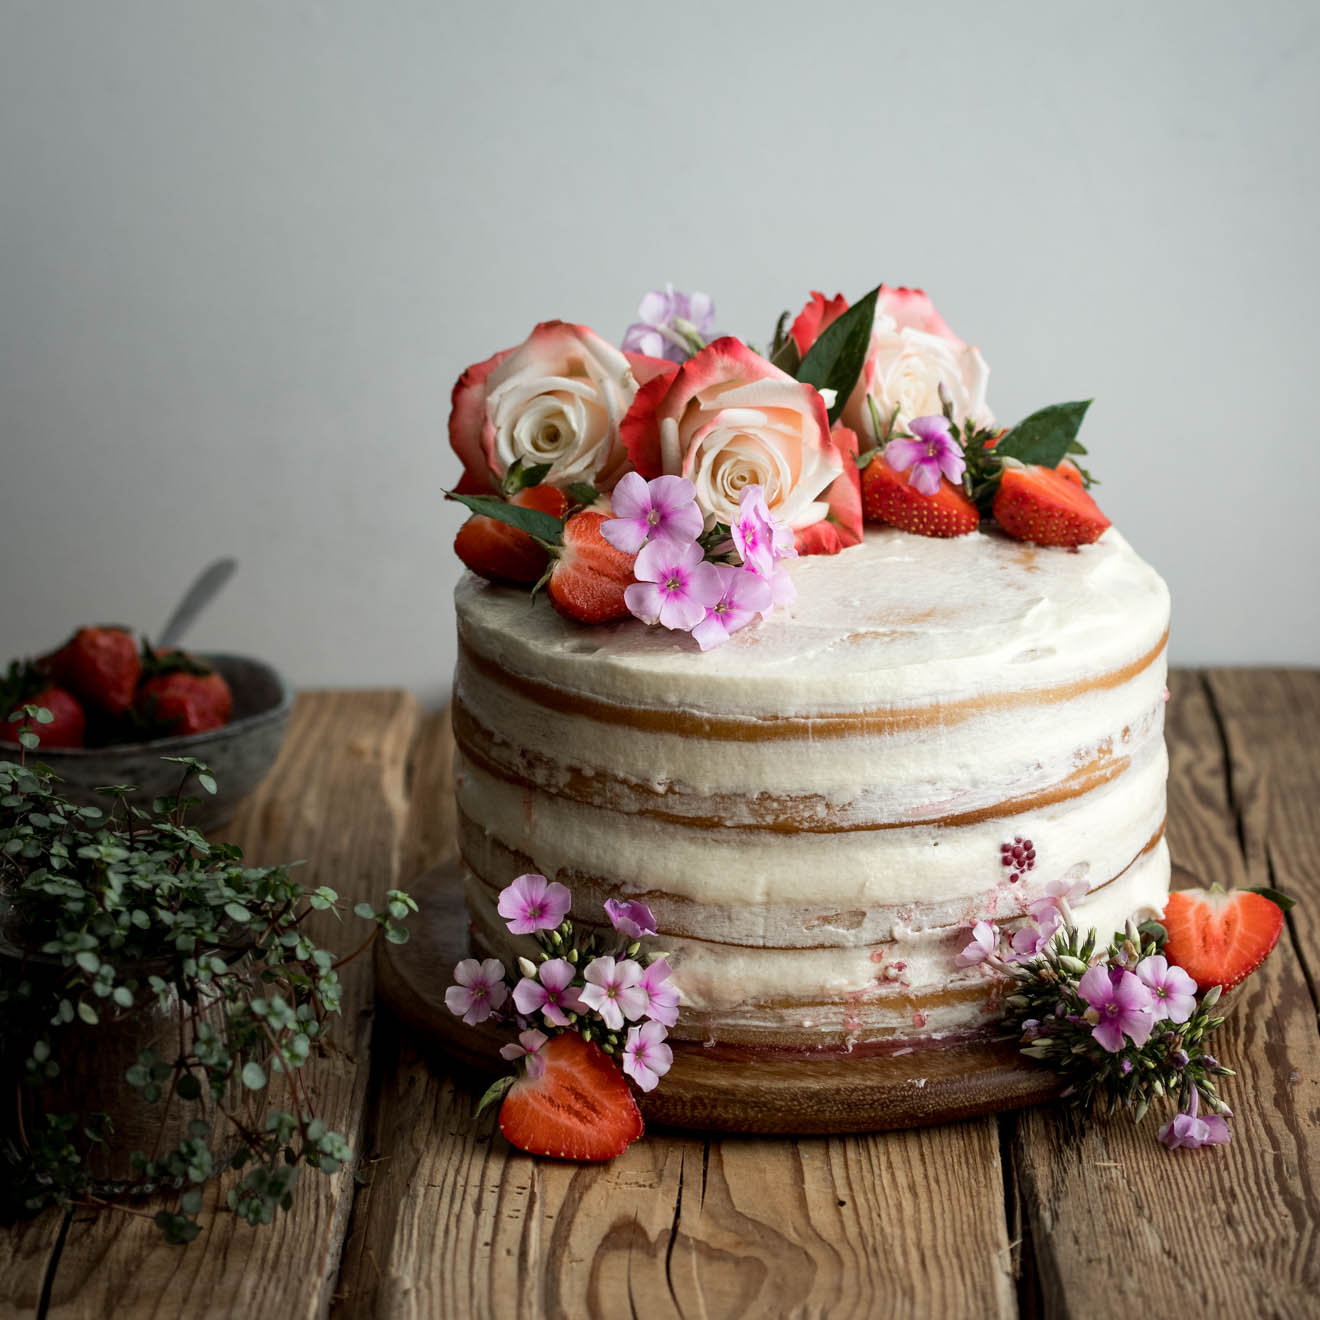 How To Make Vanilla Layer Cake